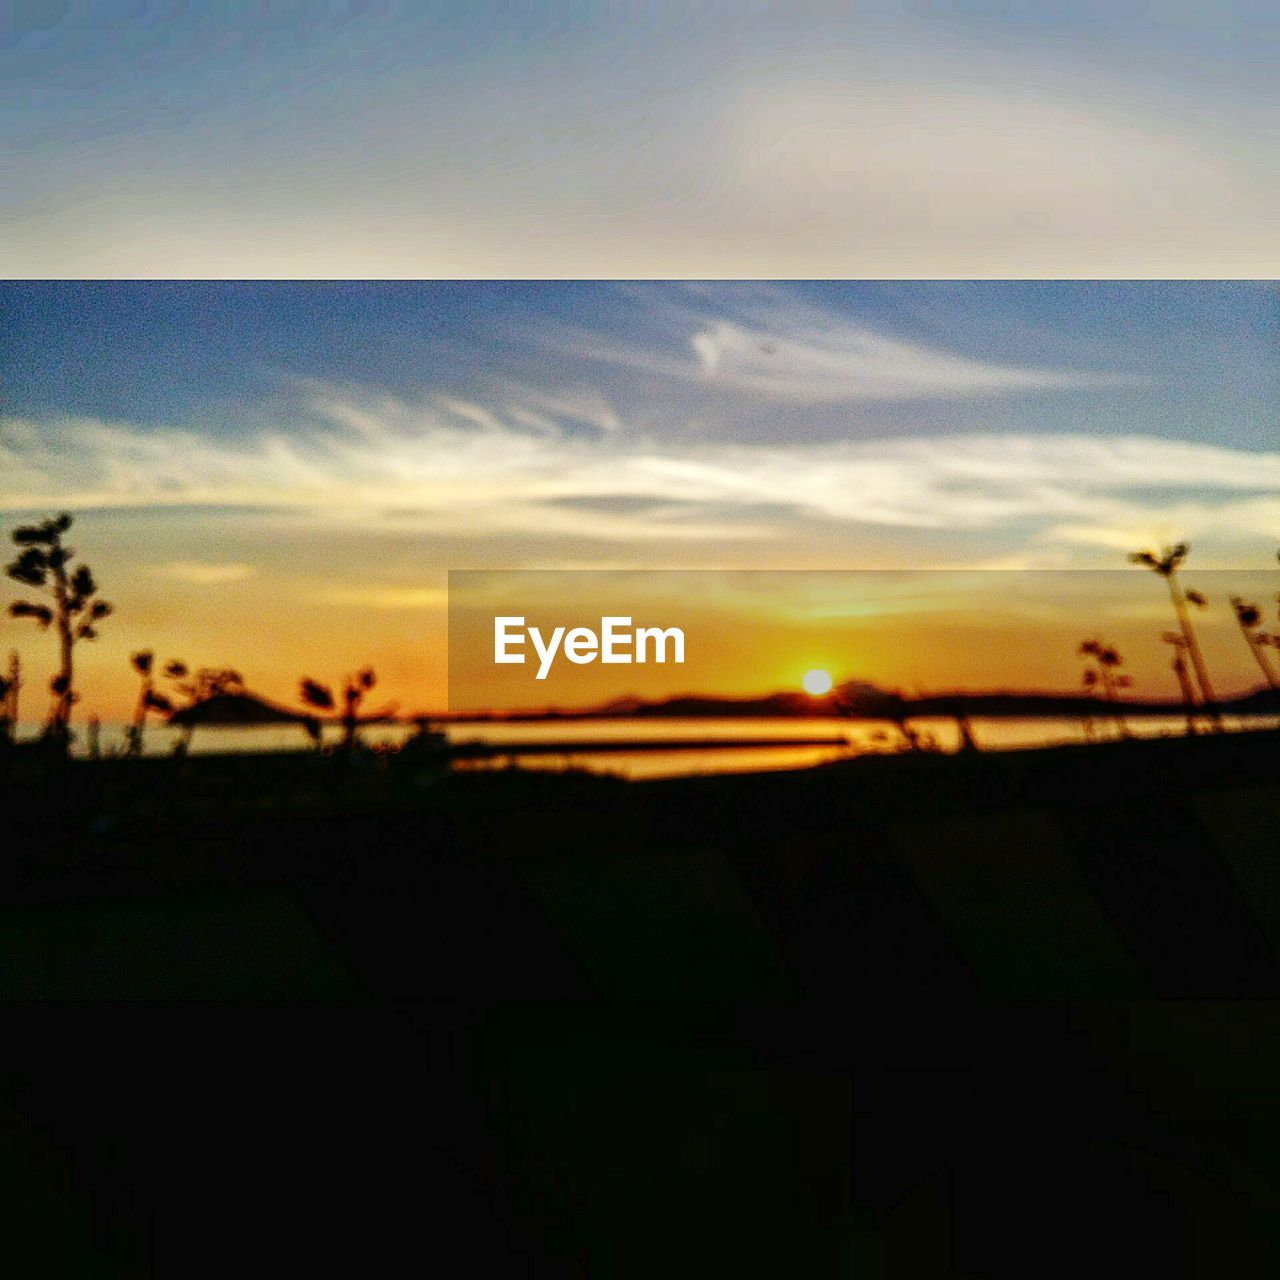 sunset, silhouette, nature, field, sky, tranquility, no people, beauty in nature, scenics, landscape, outdoors